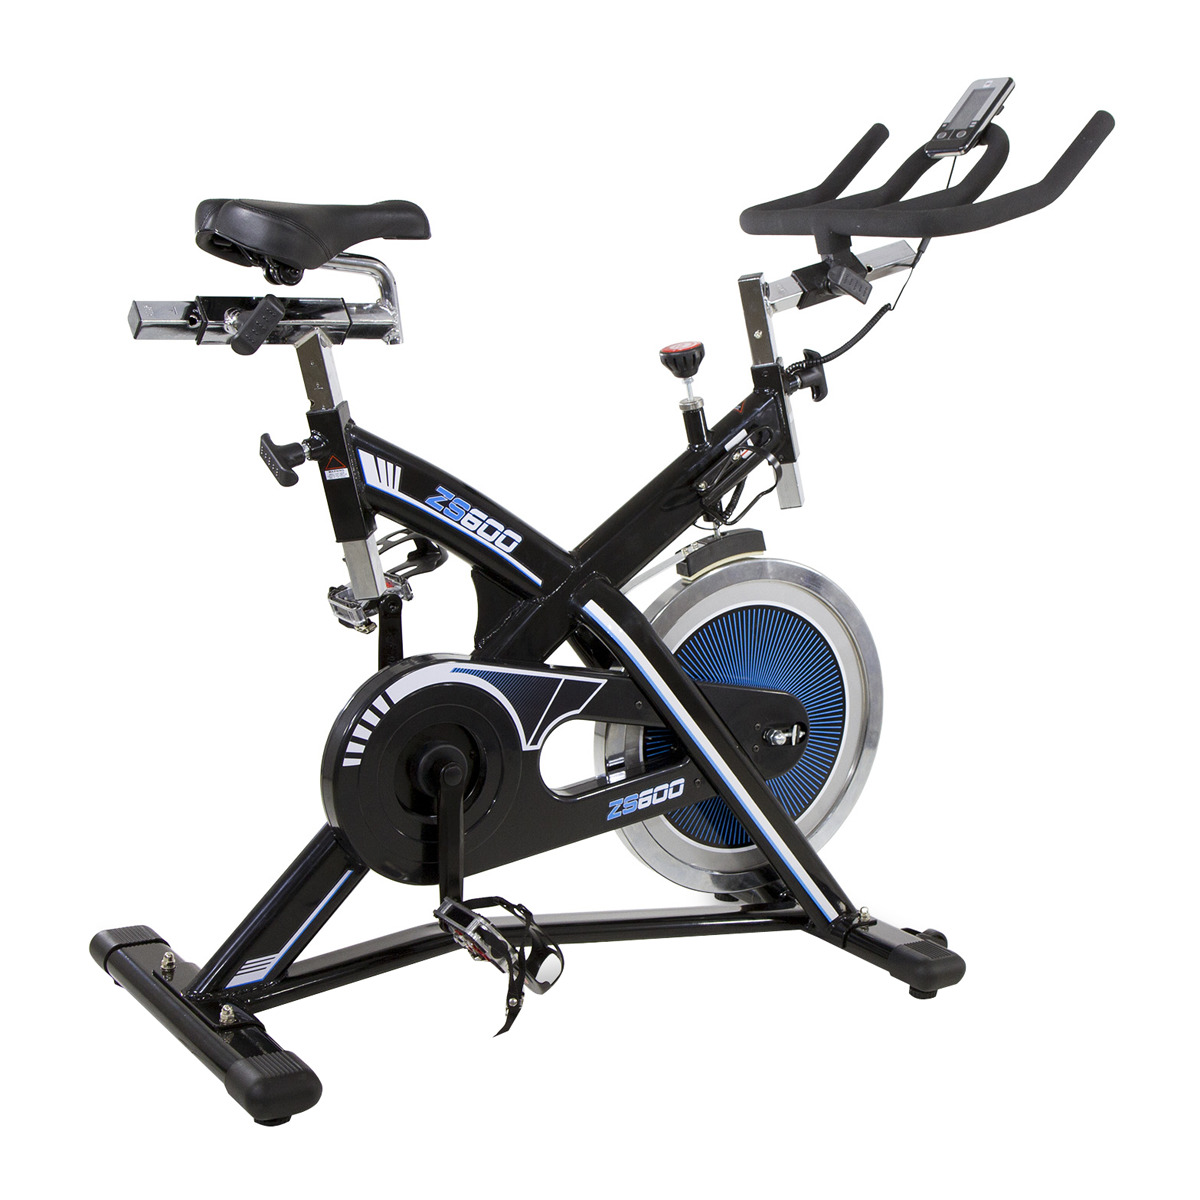 Bh fitness ZS 600